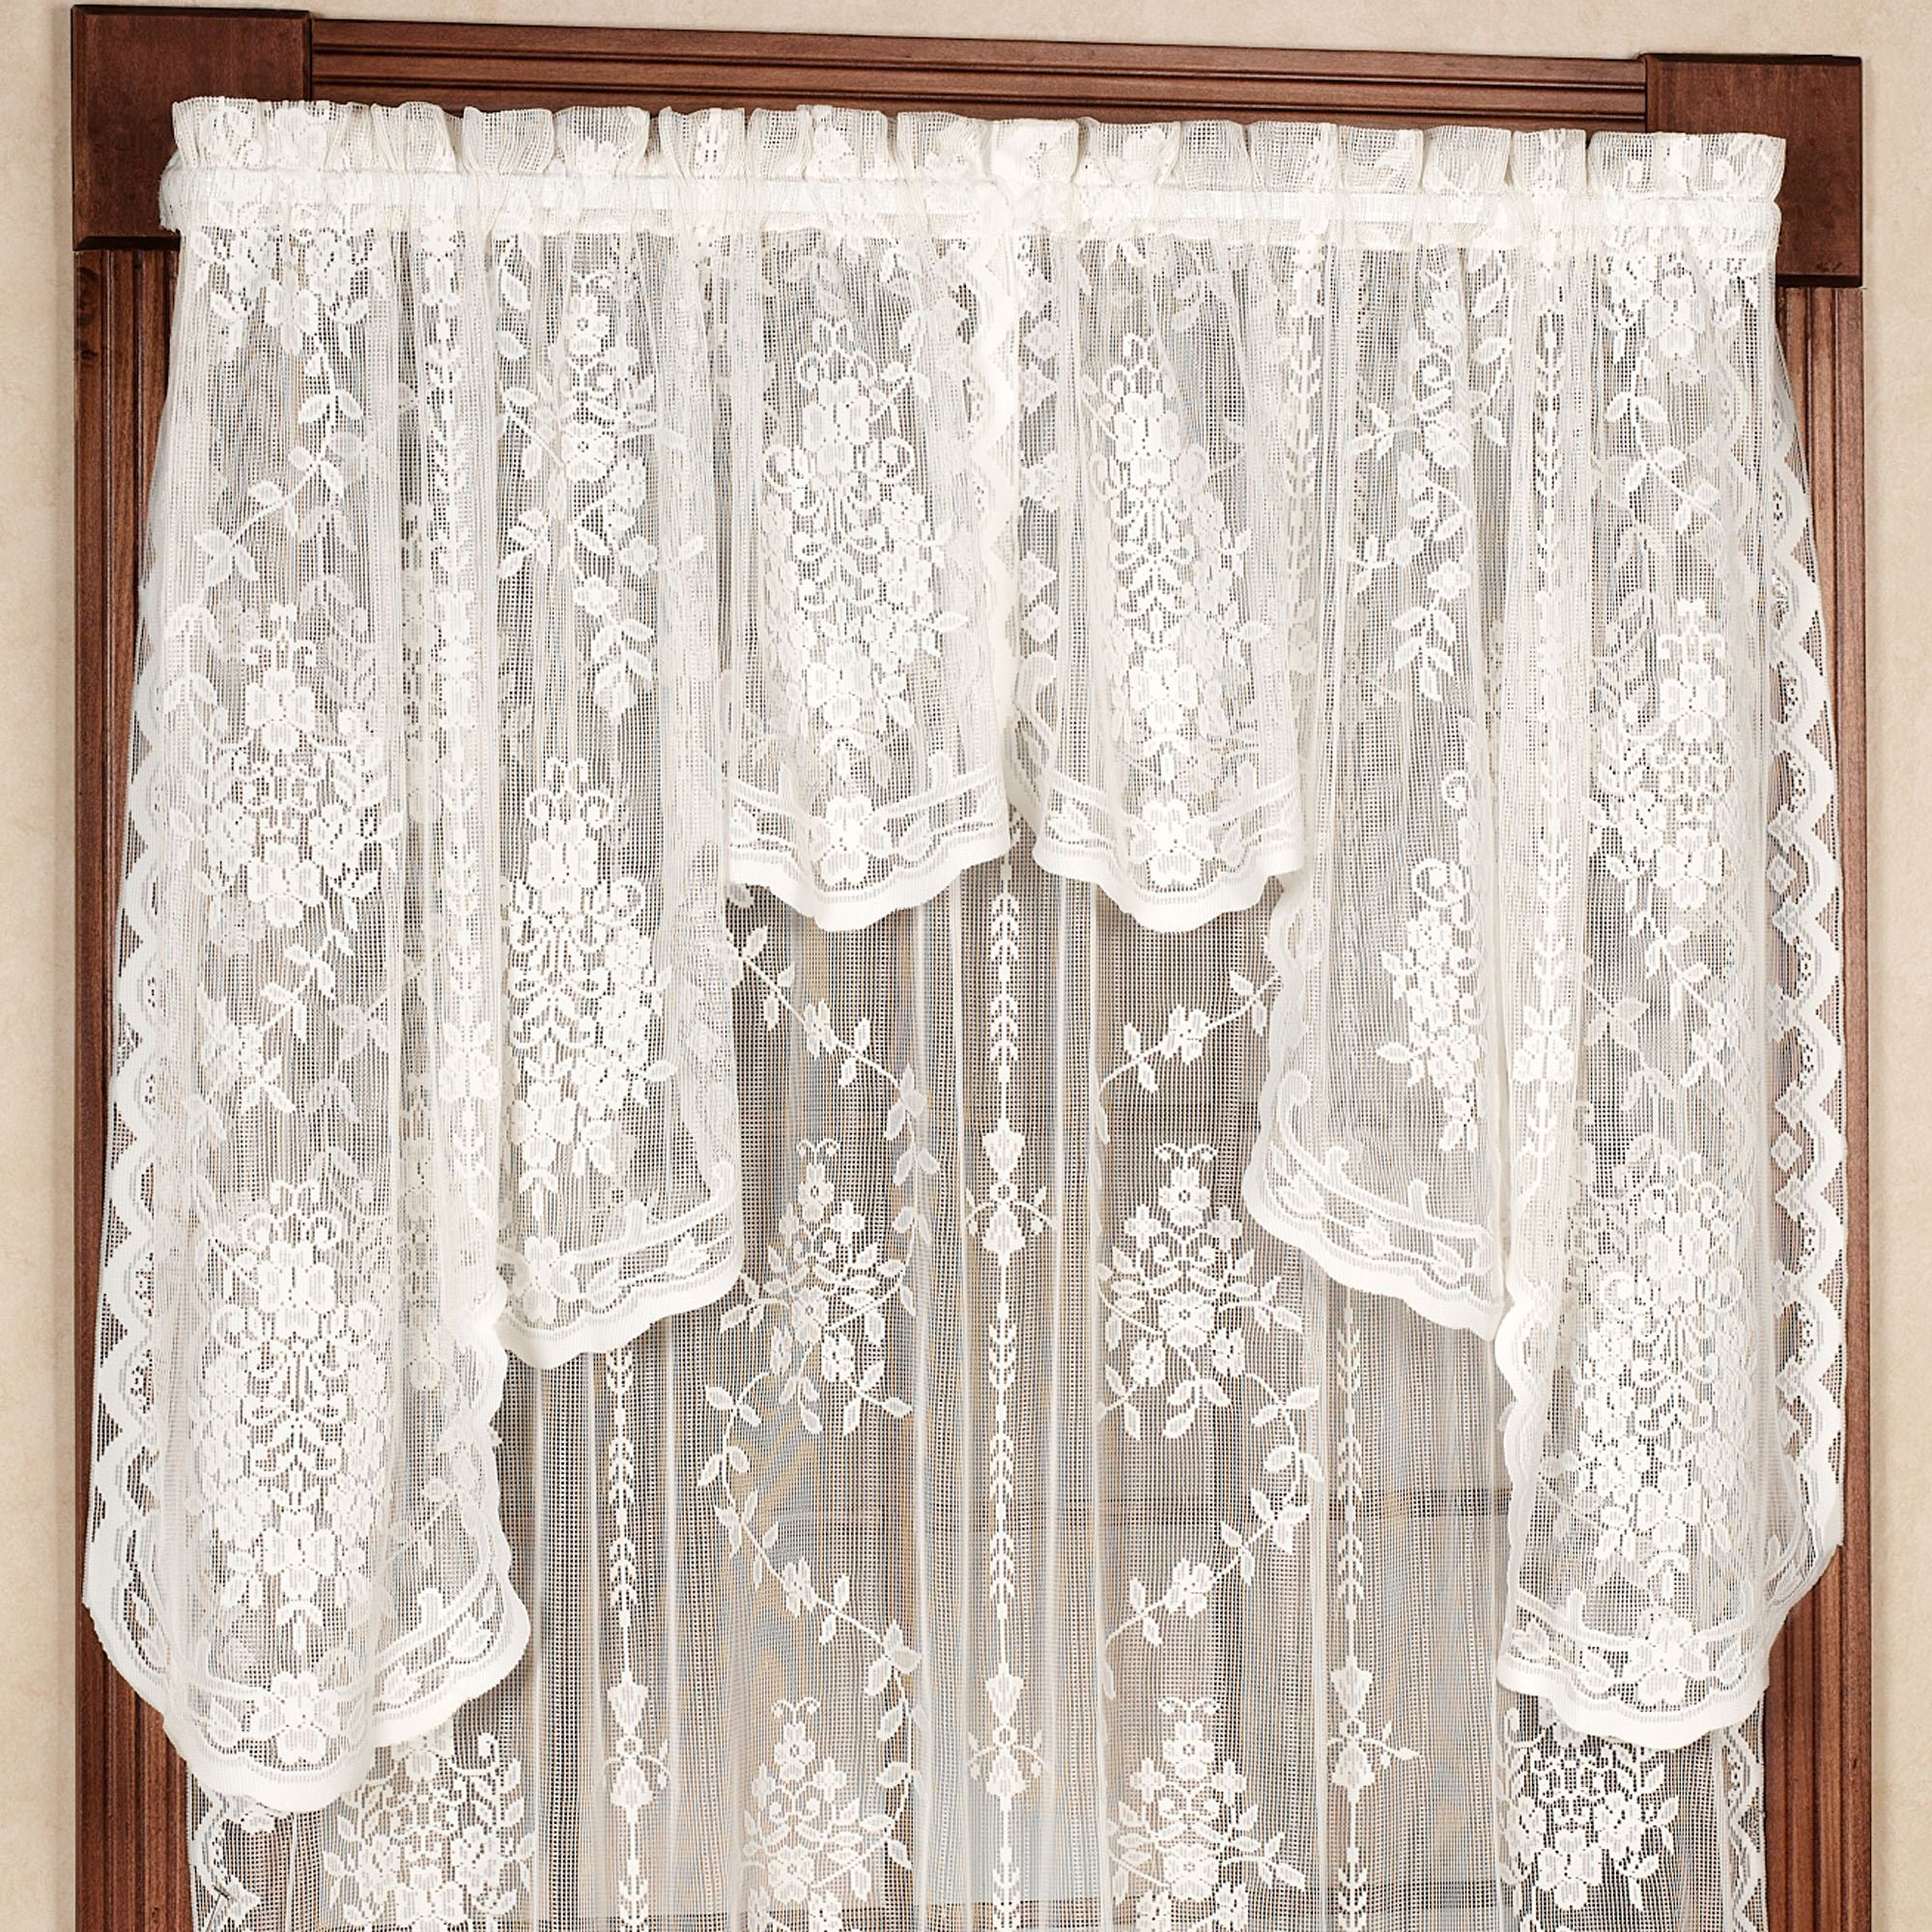 from in hollow finished vintage sheer valance balloon curtain lace cafe home rural curtains hotel for item garden blind